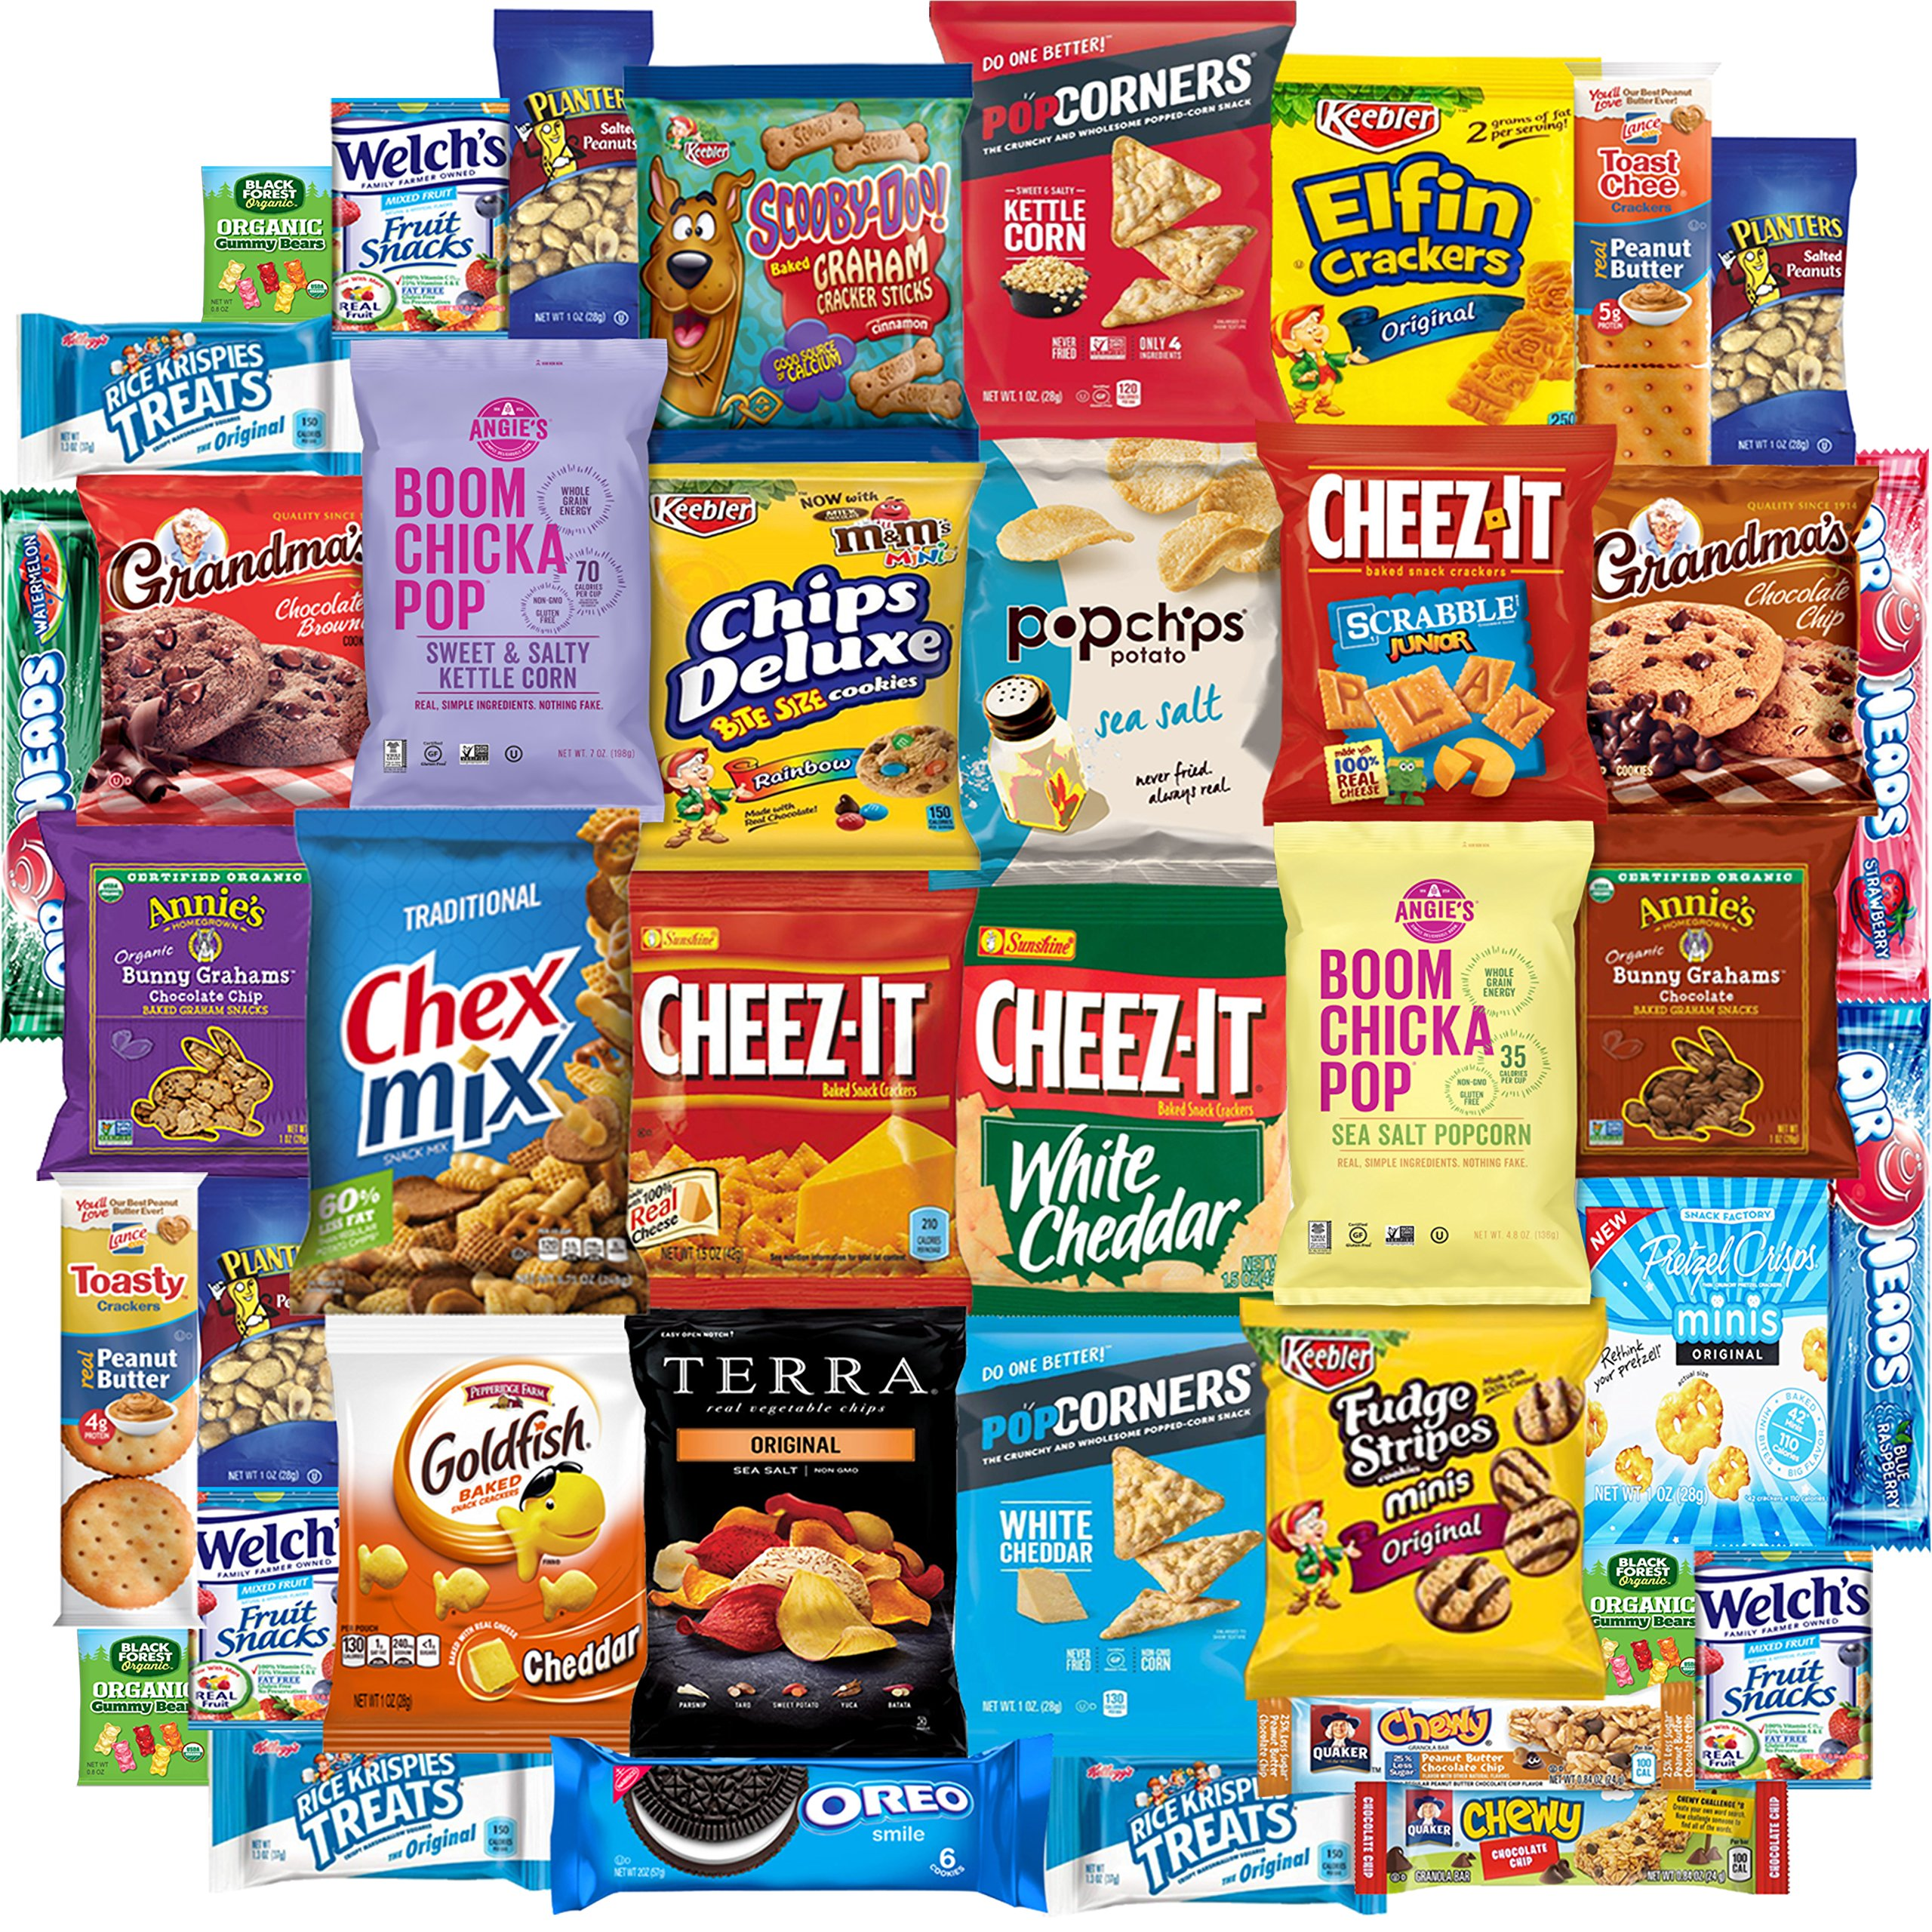 Snack Chest Care Package (40 Count) Variety Snacks Gift Box - College Students, Military, Work or Home - Over 3 Pounds of Chips Cookies & Candy! by Snack Chest